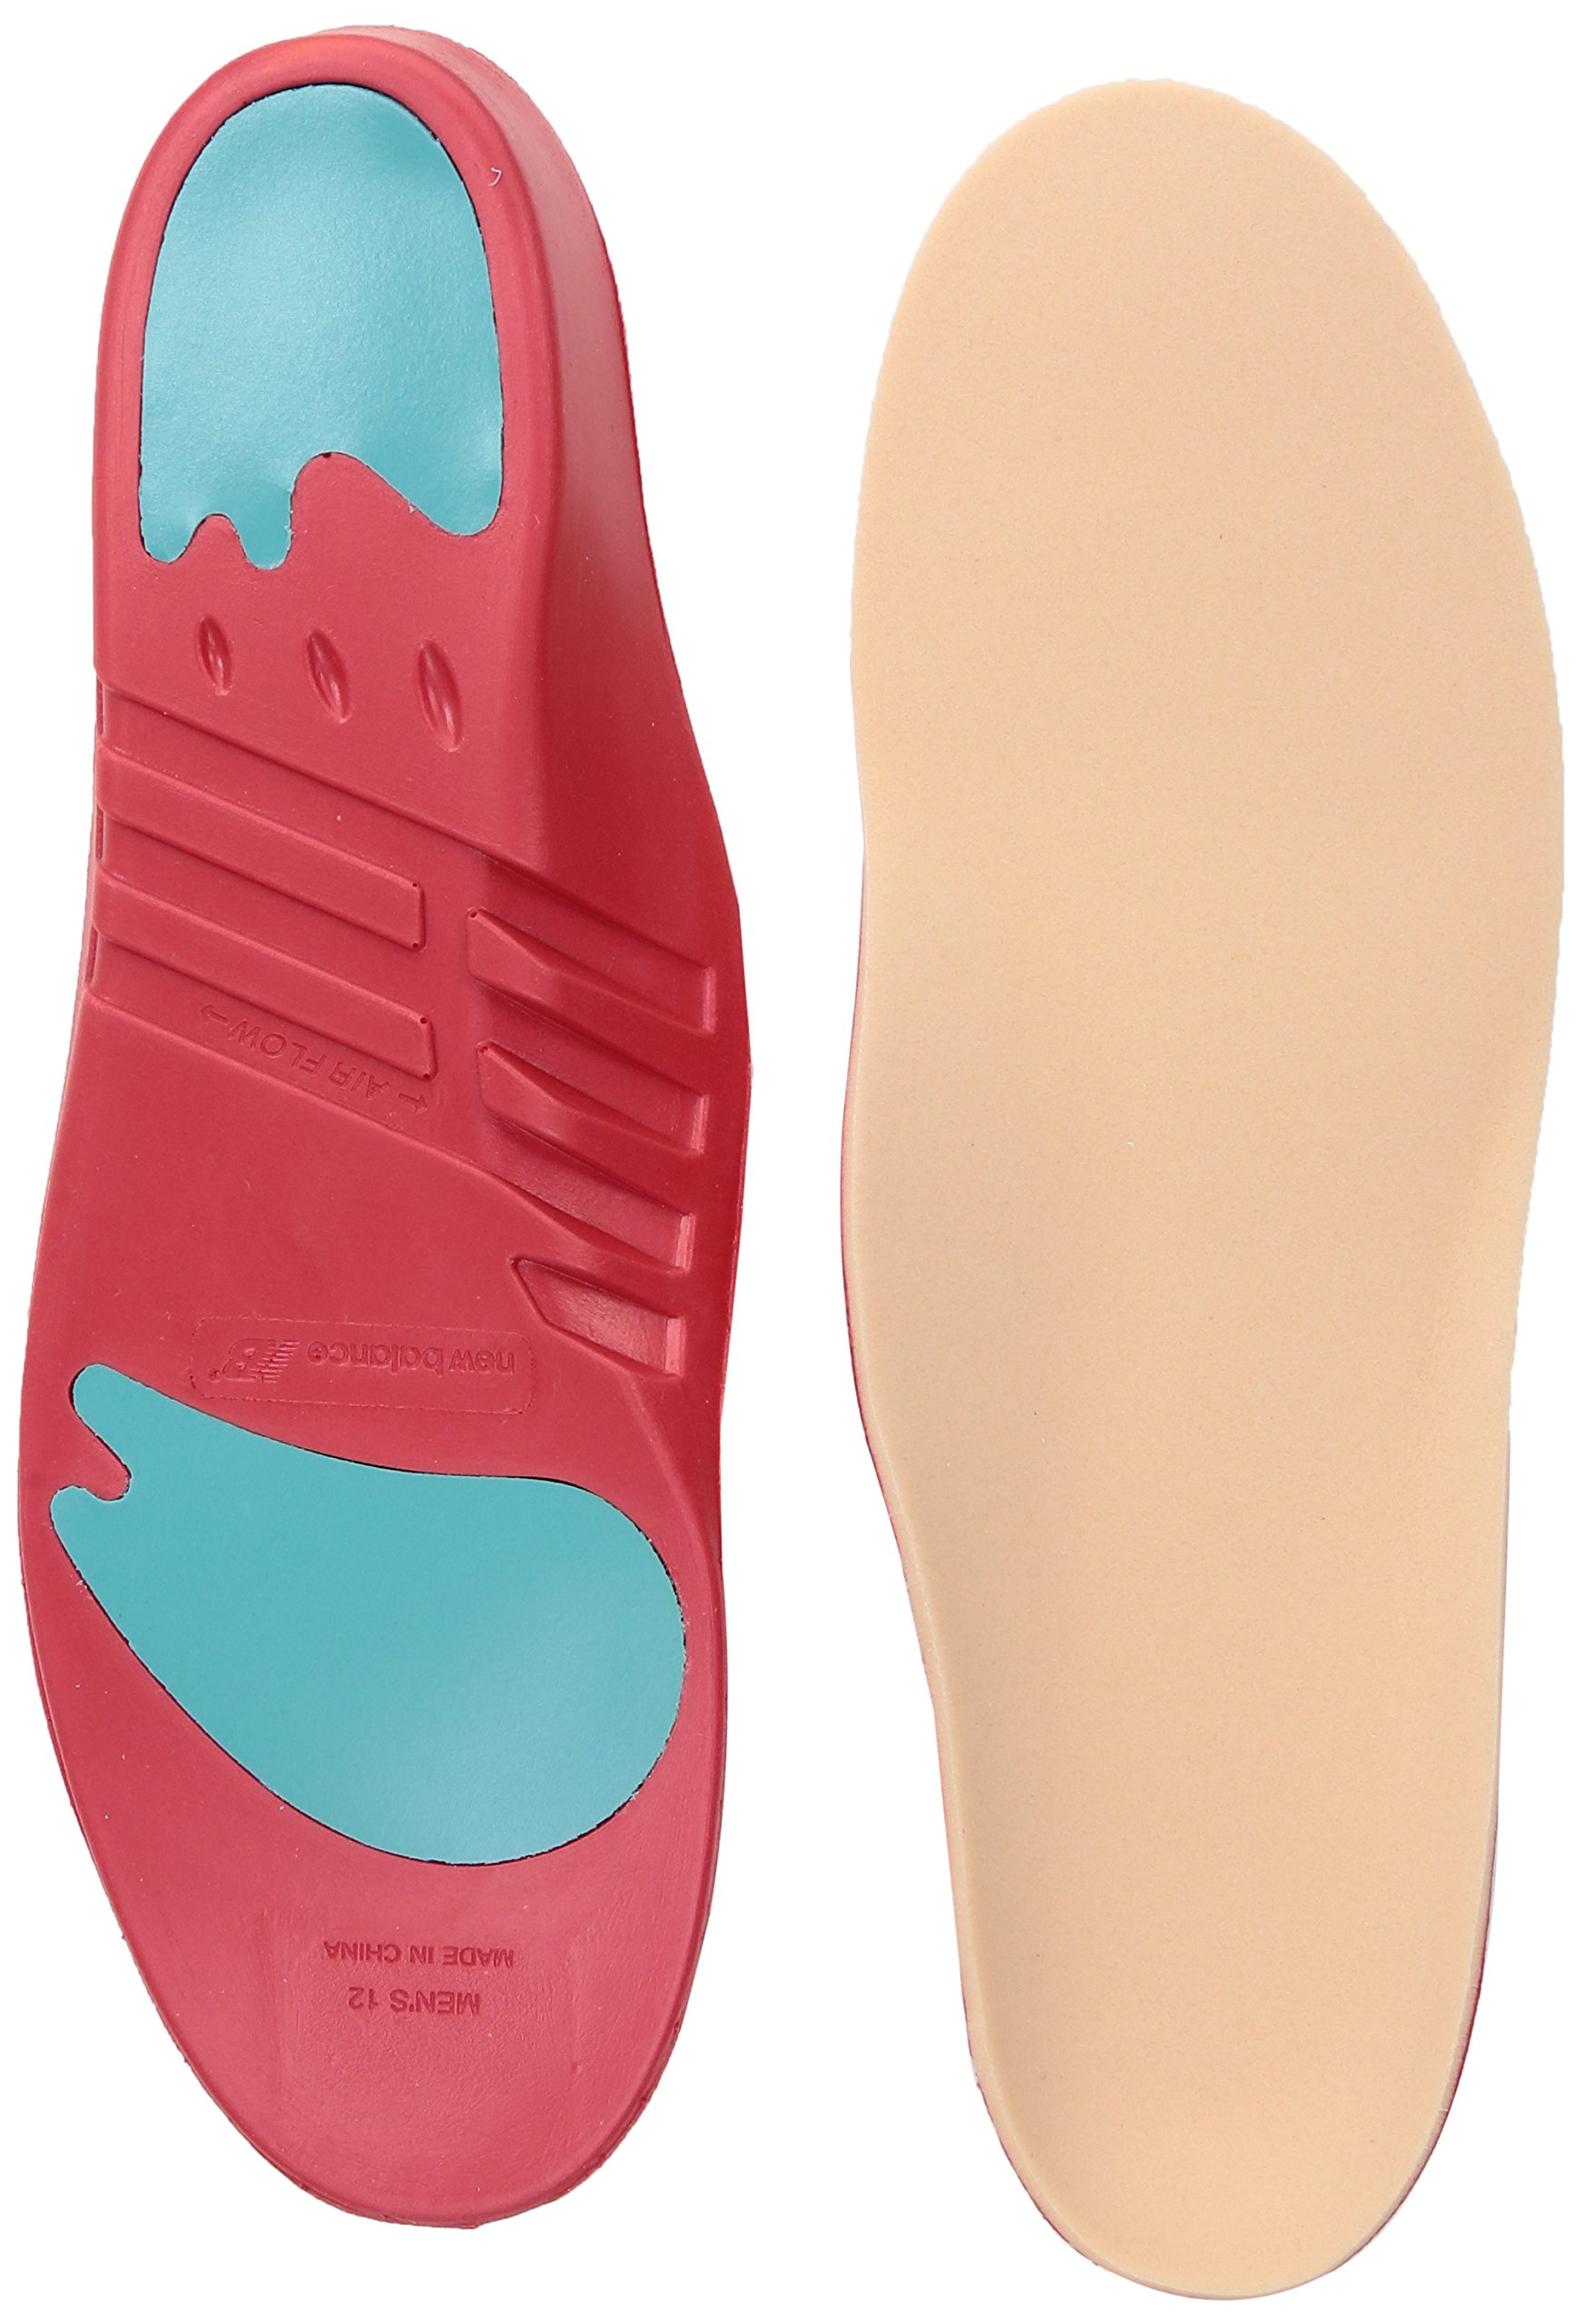 New Balance Insoles 3020 Pressure Relief Insole-Neutral Shoe, beige Medium/M 9-9.5, W 10.5-11 D US